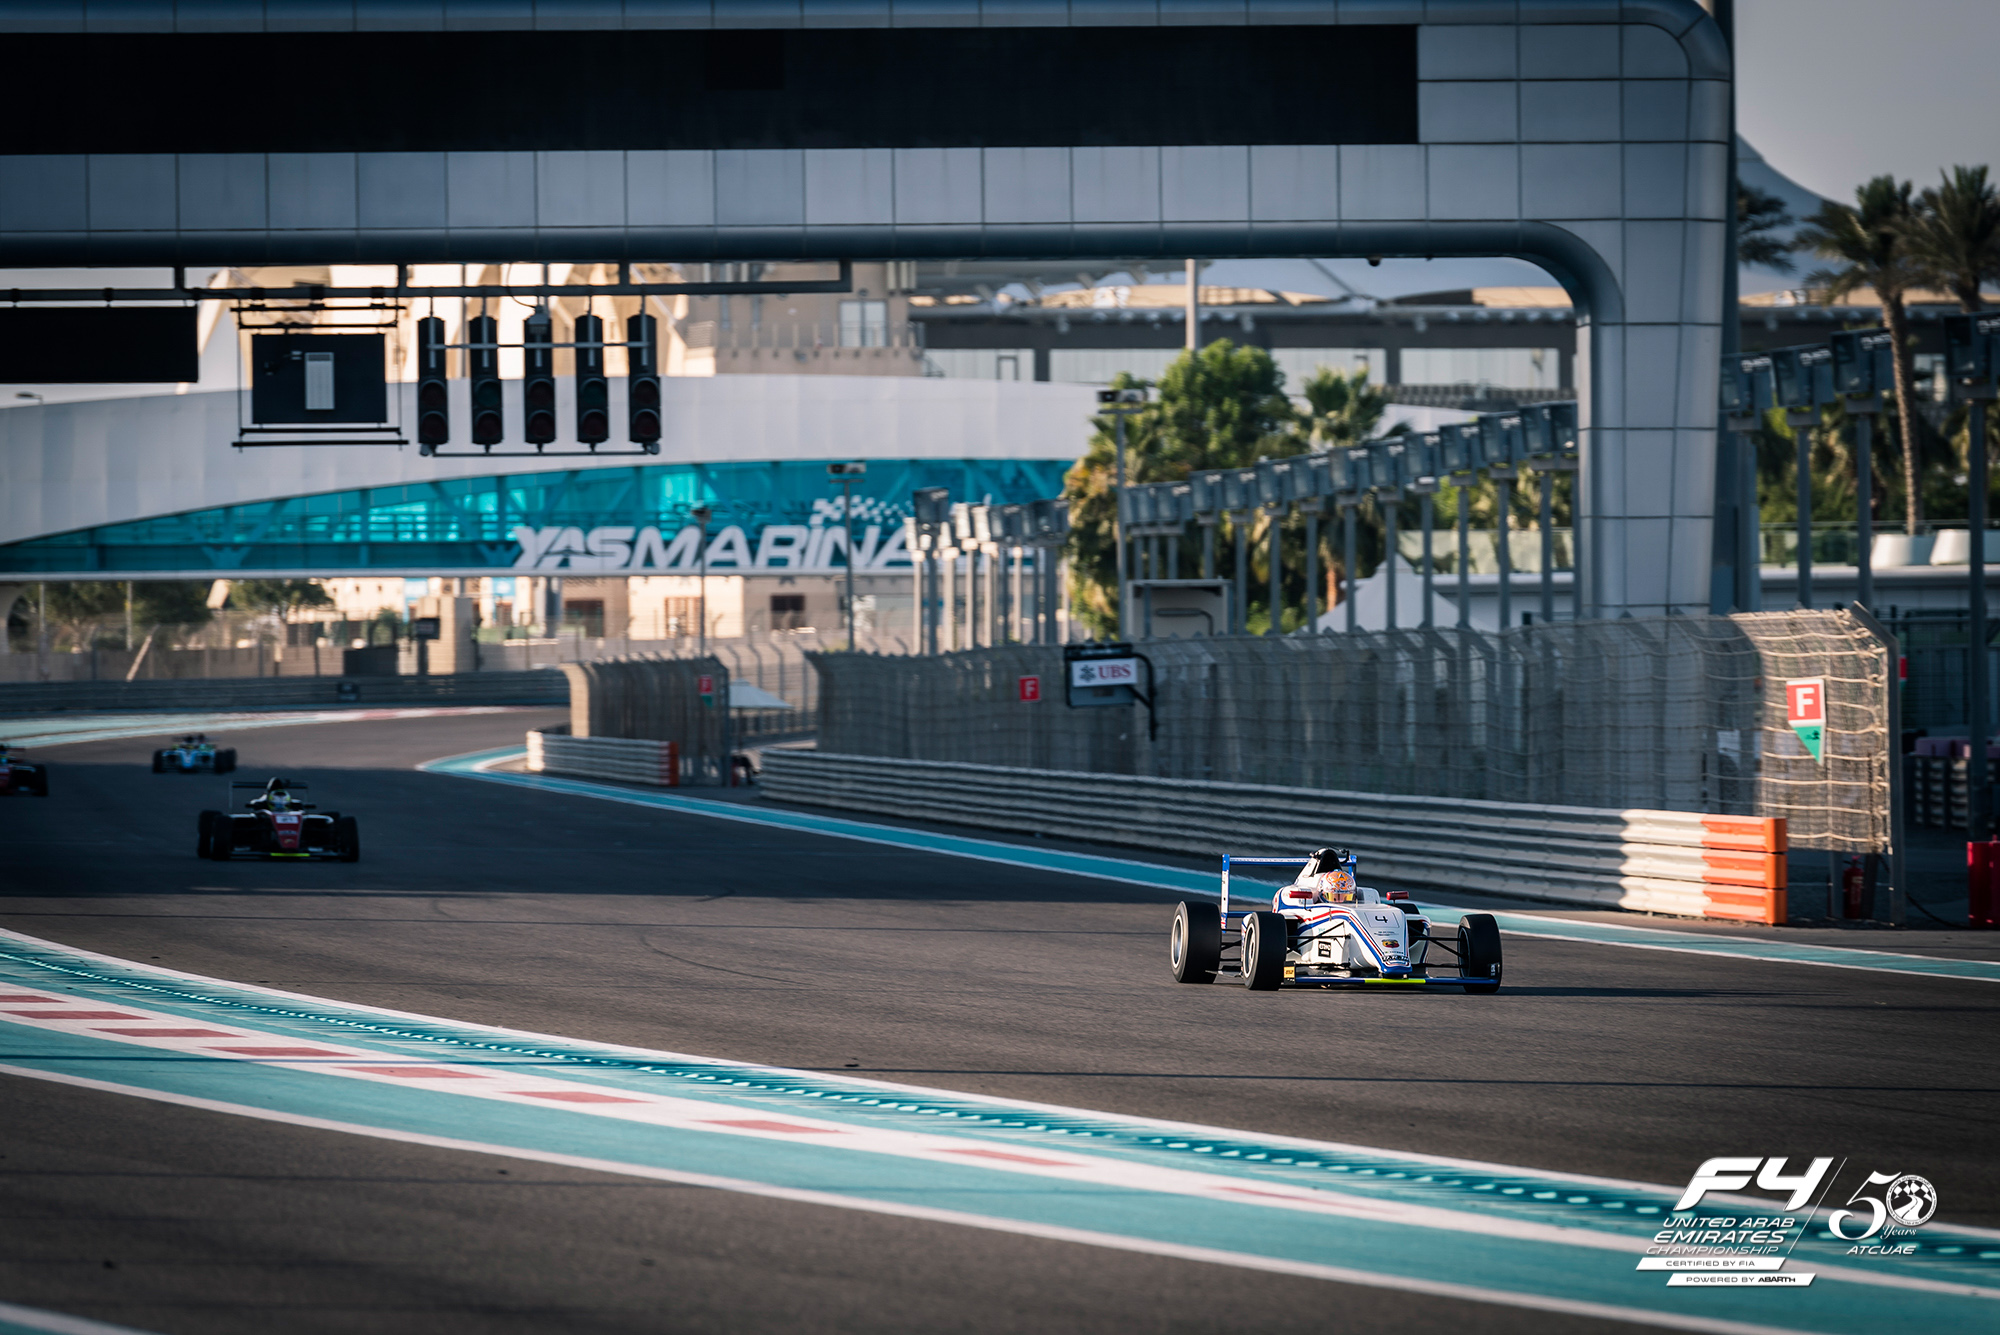 2016 12 18   F4 Second Roud   Abu Dhabi 6 Of 39